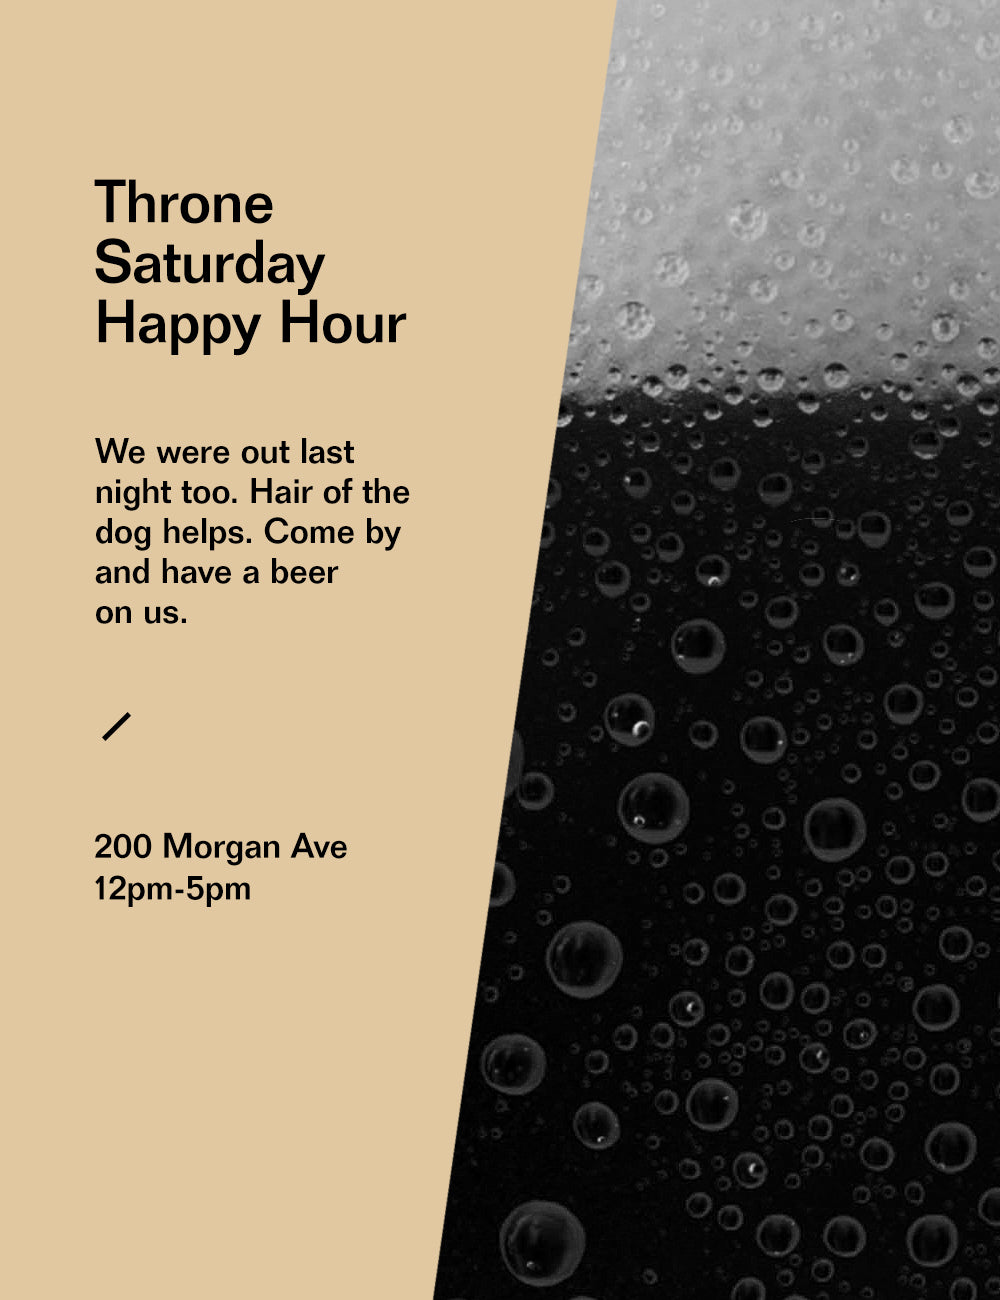 Throne Saturday Happy Hour 05/11/18